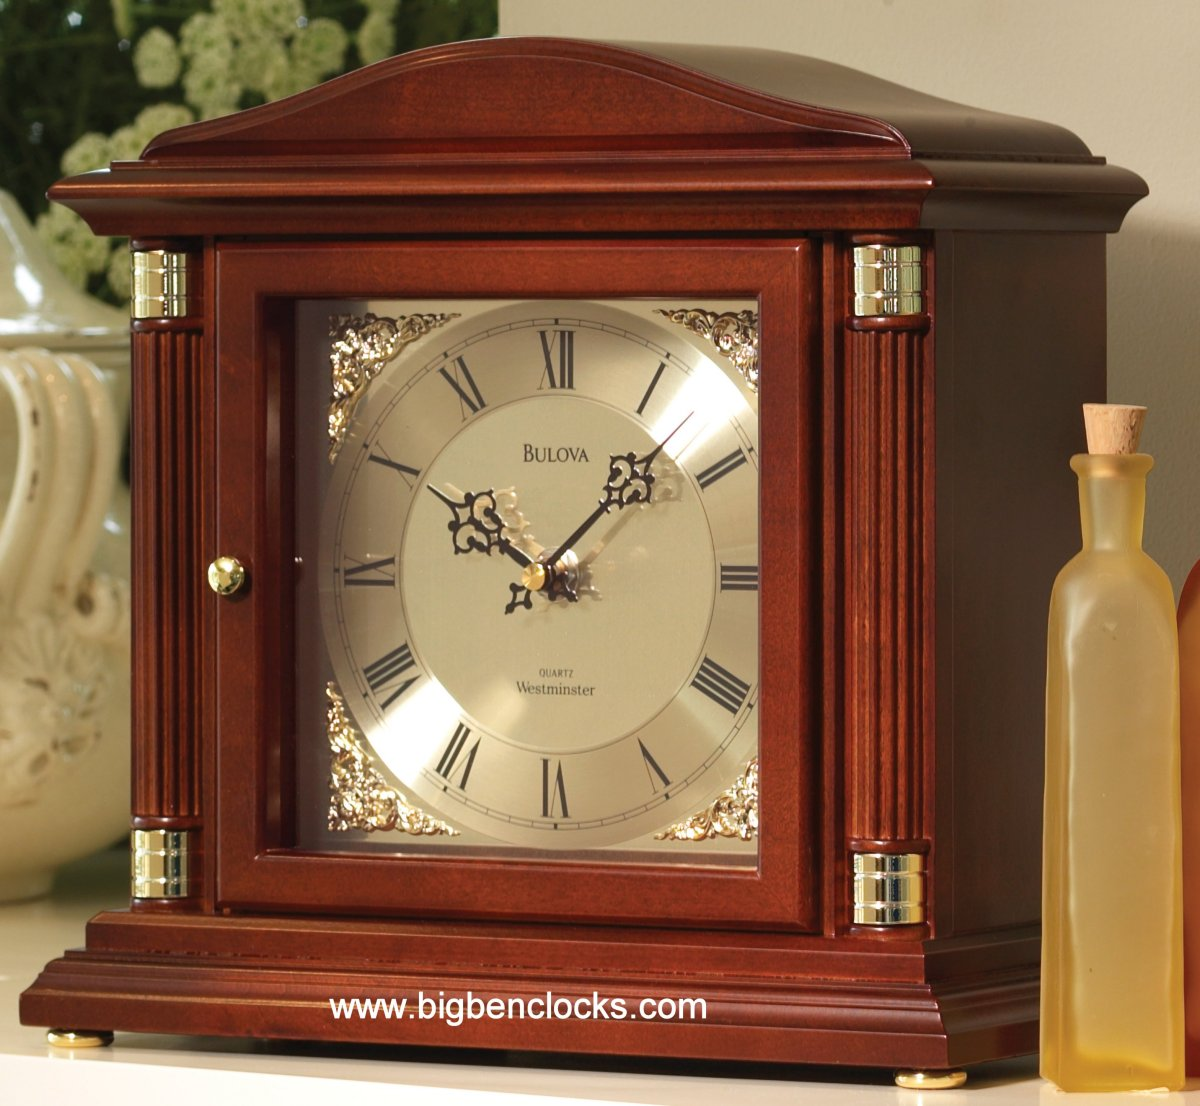 Bulova Mantel Clock | Mantleclocks | Bulova Holyoke Quartz Desk Clock